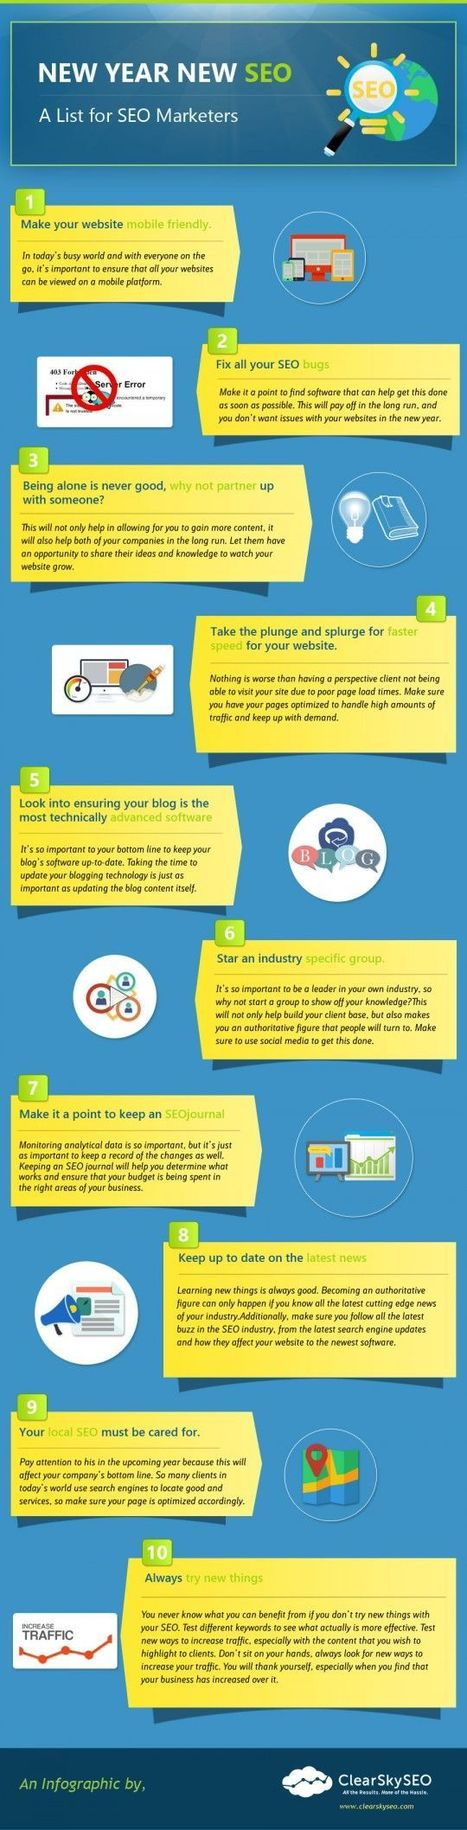 New Year New SEO - A List for SEO Marketers | ClearskySEO Links | Scoop.it